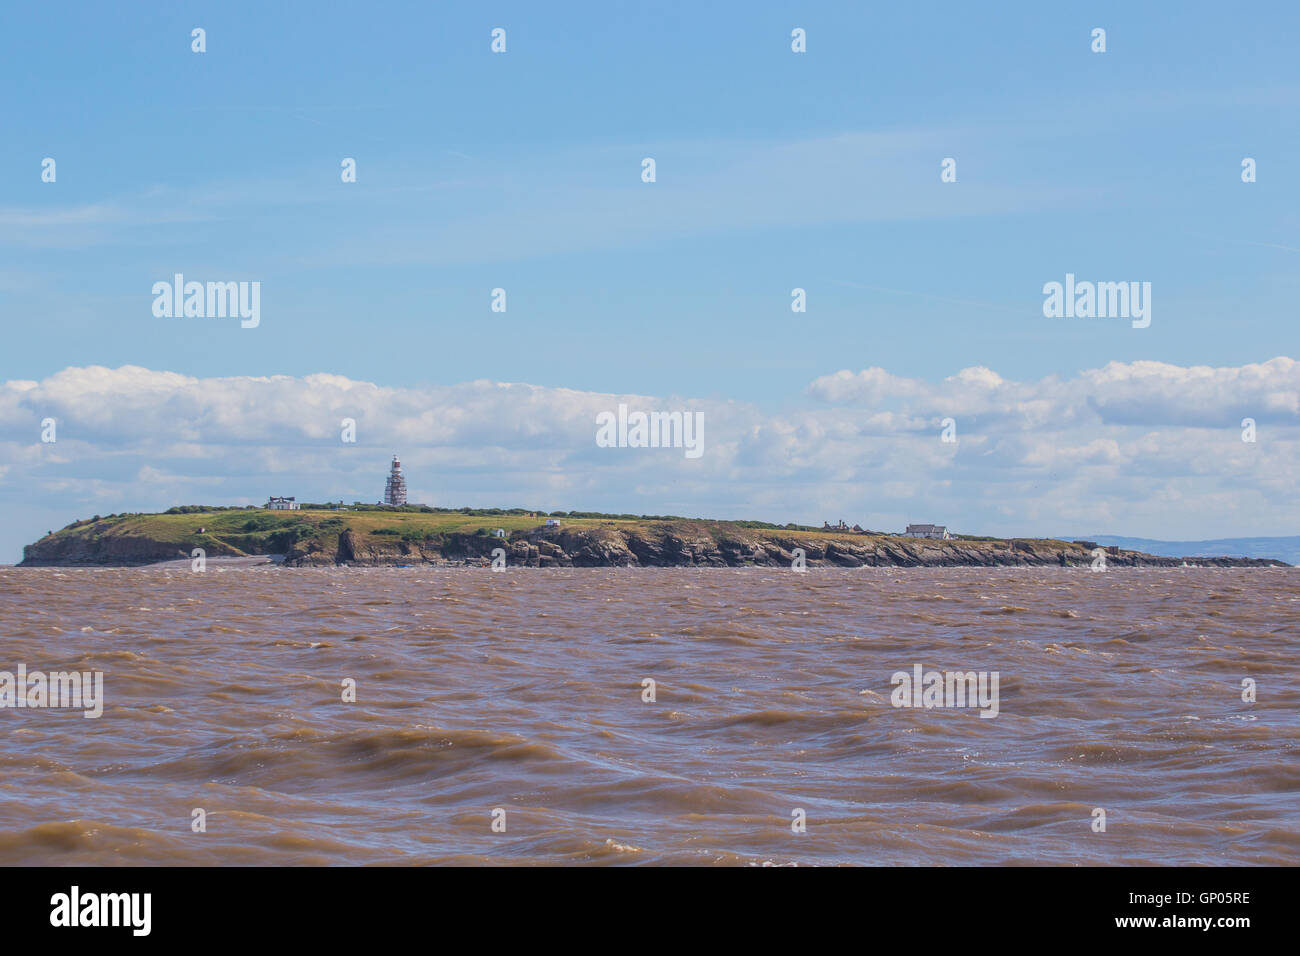 Flat Holm Island viewed from boat in the Bristol Channel - Stock Image